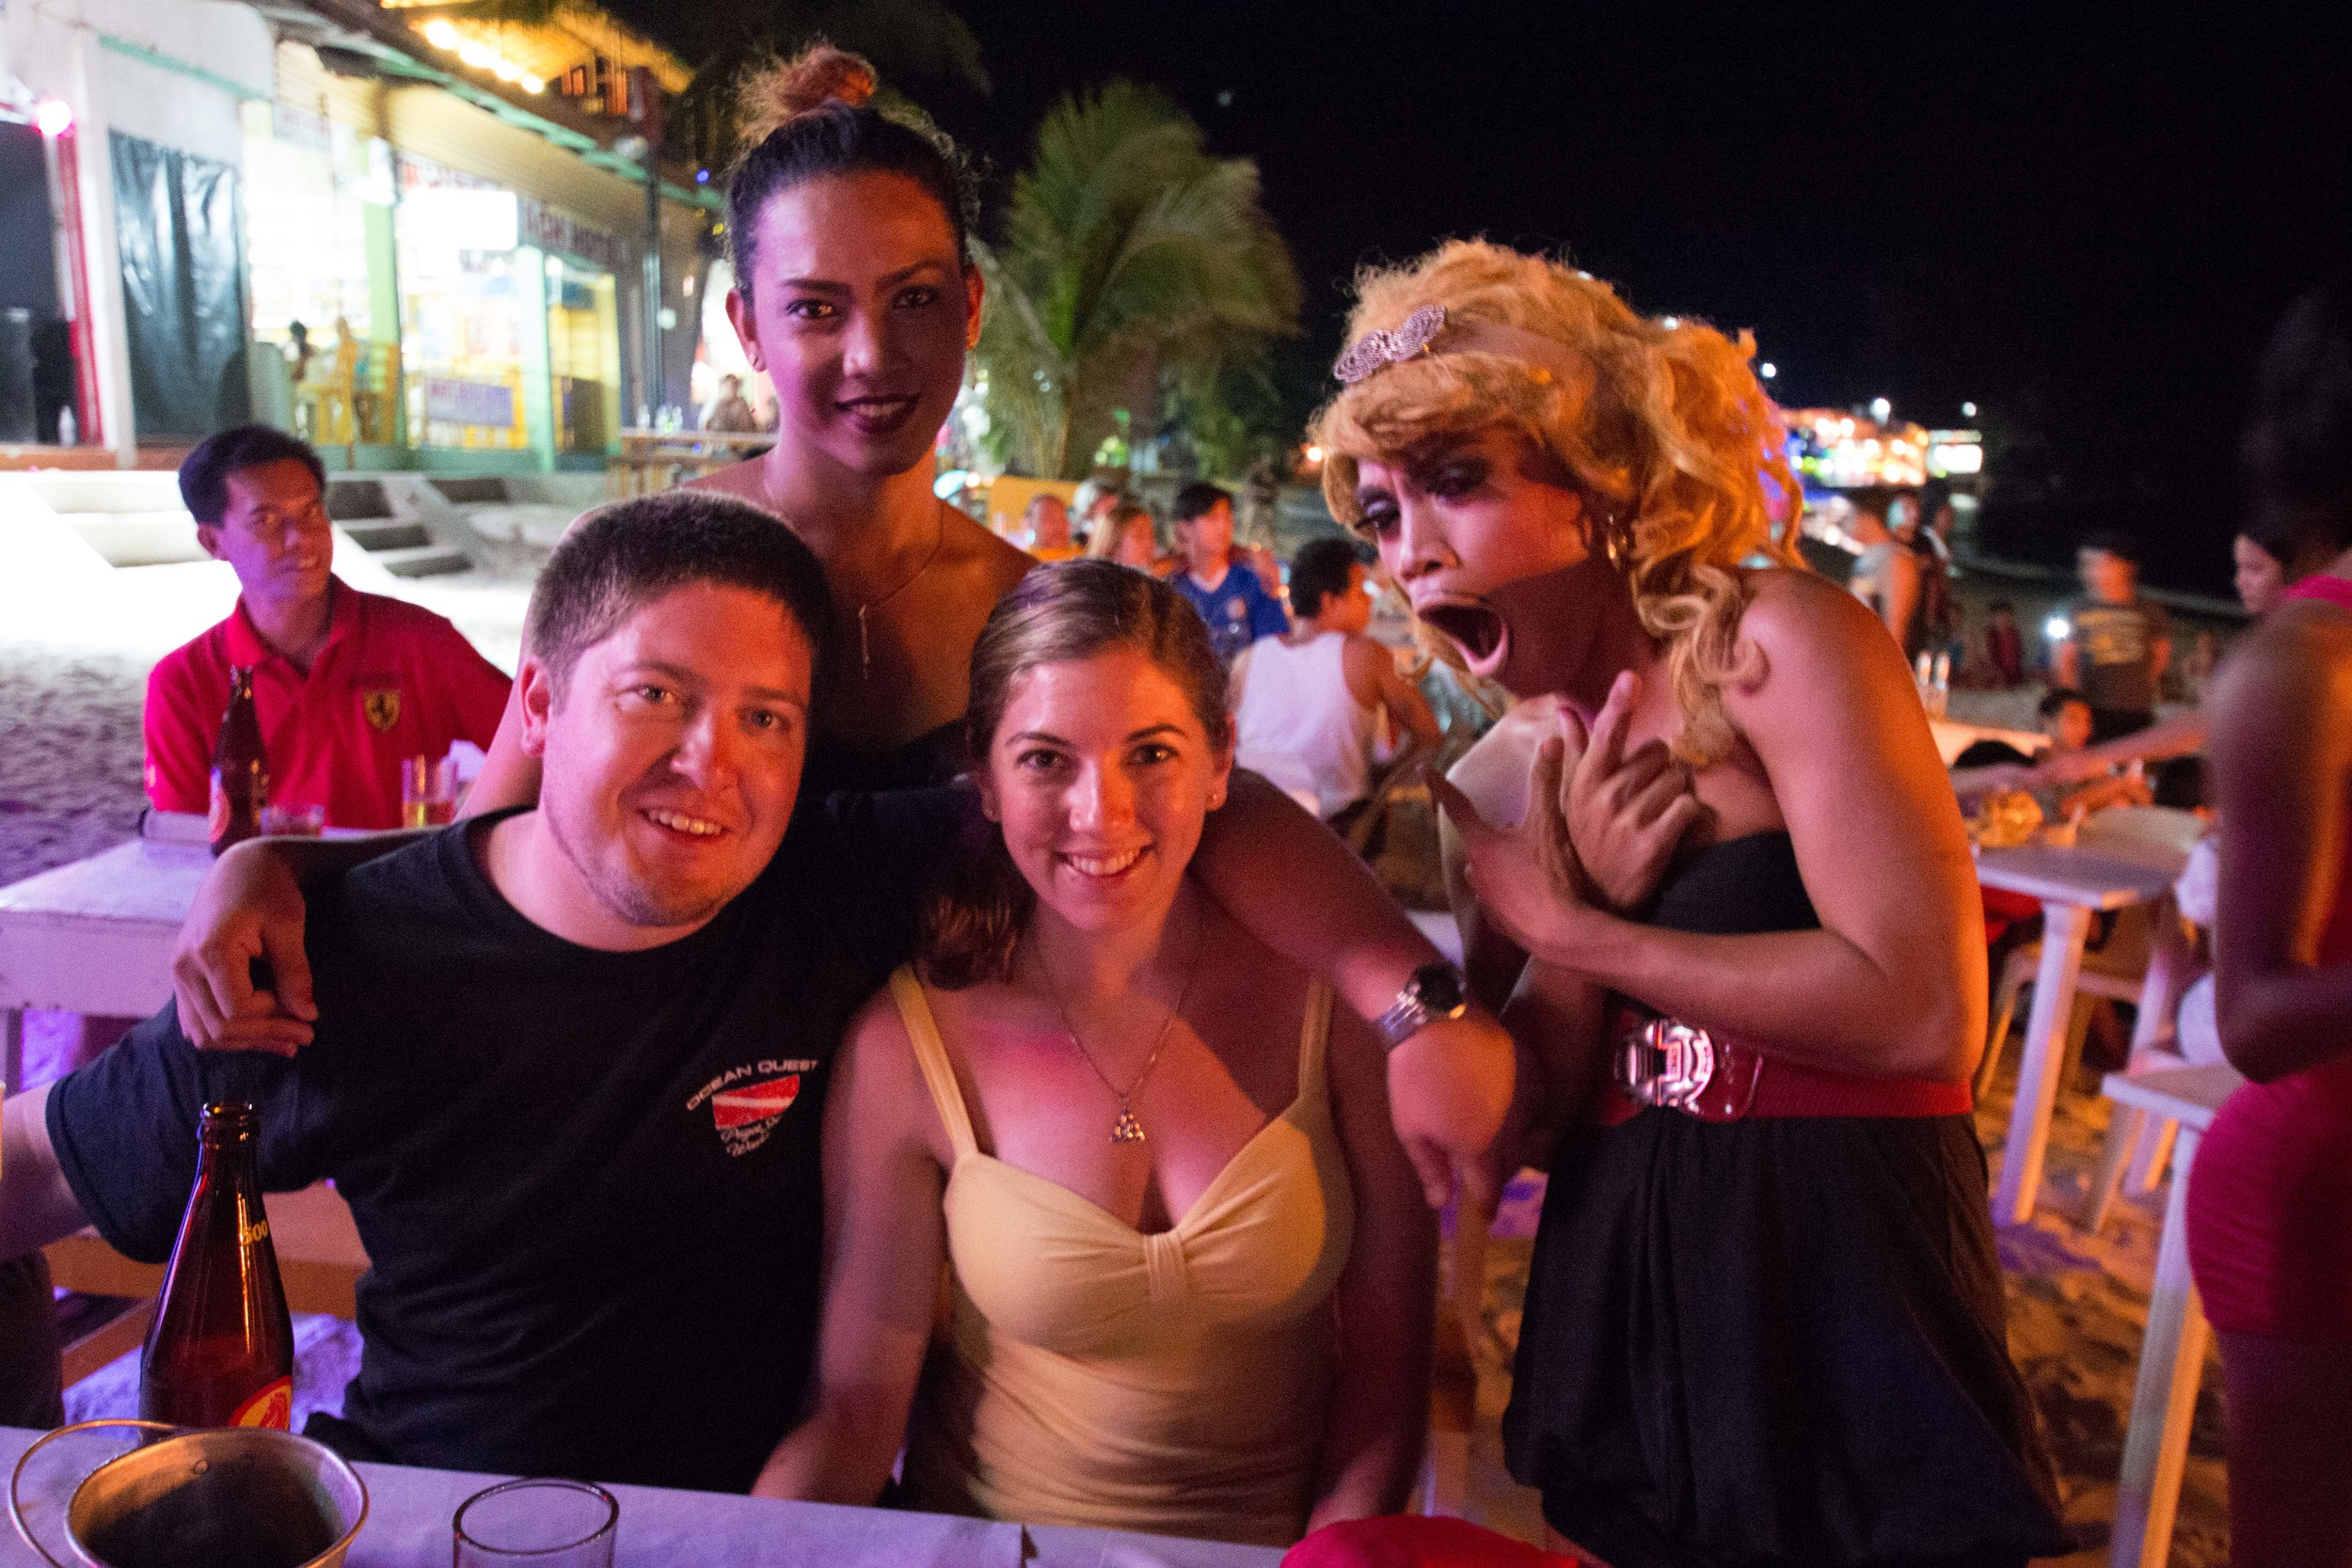 Aaron and I with a couple of the ladyboys from the show. The one on the left totally looks like a woman to me!